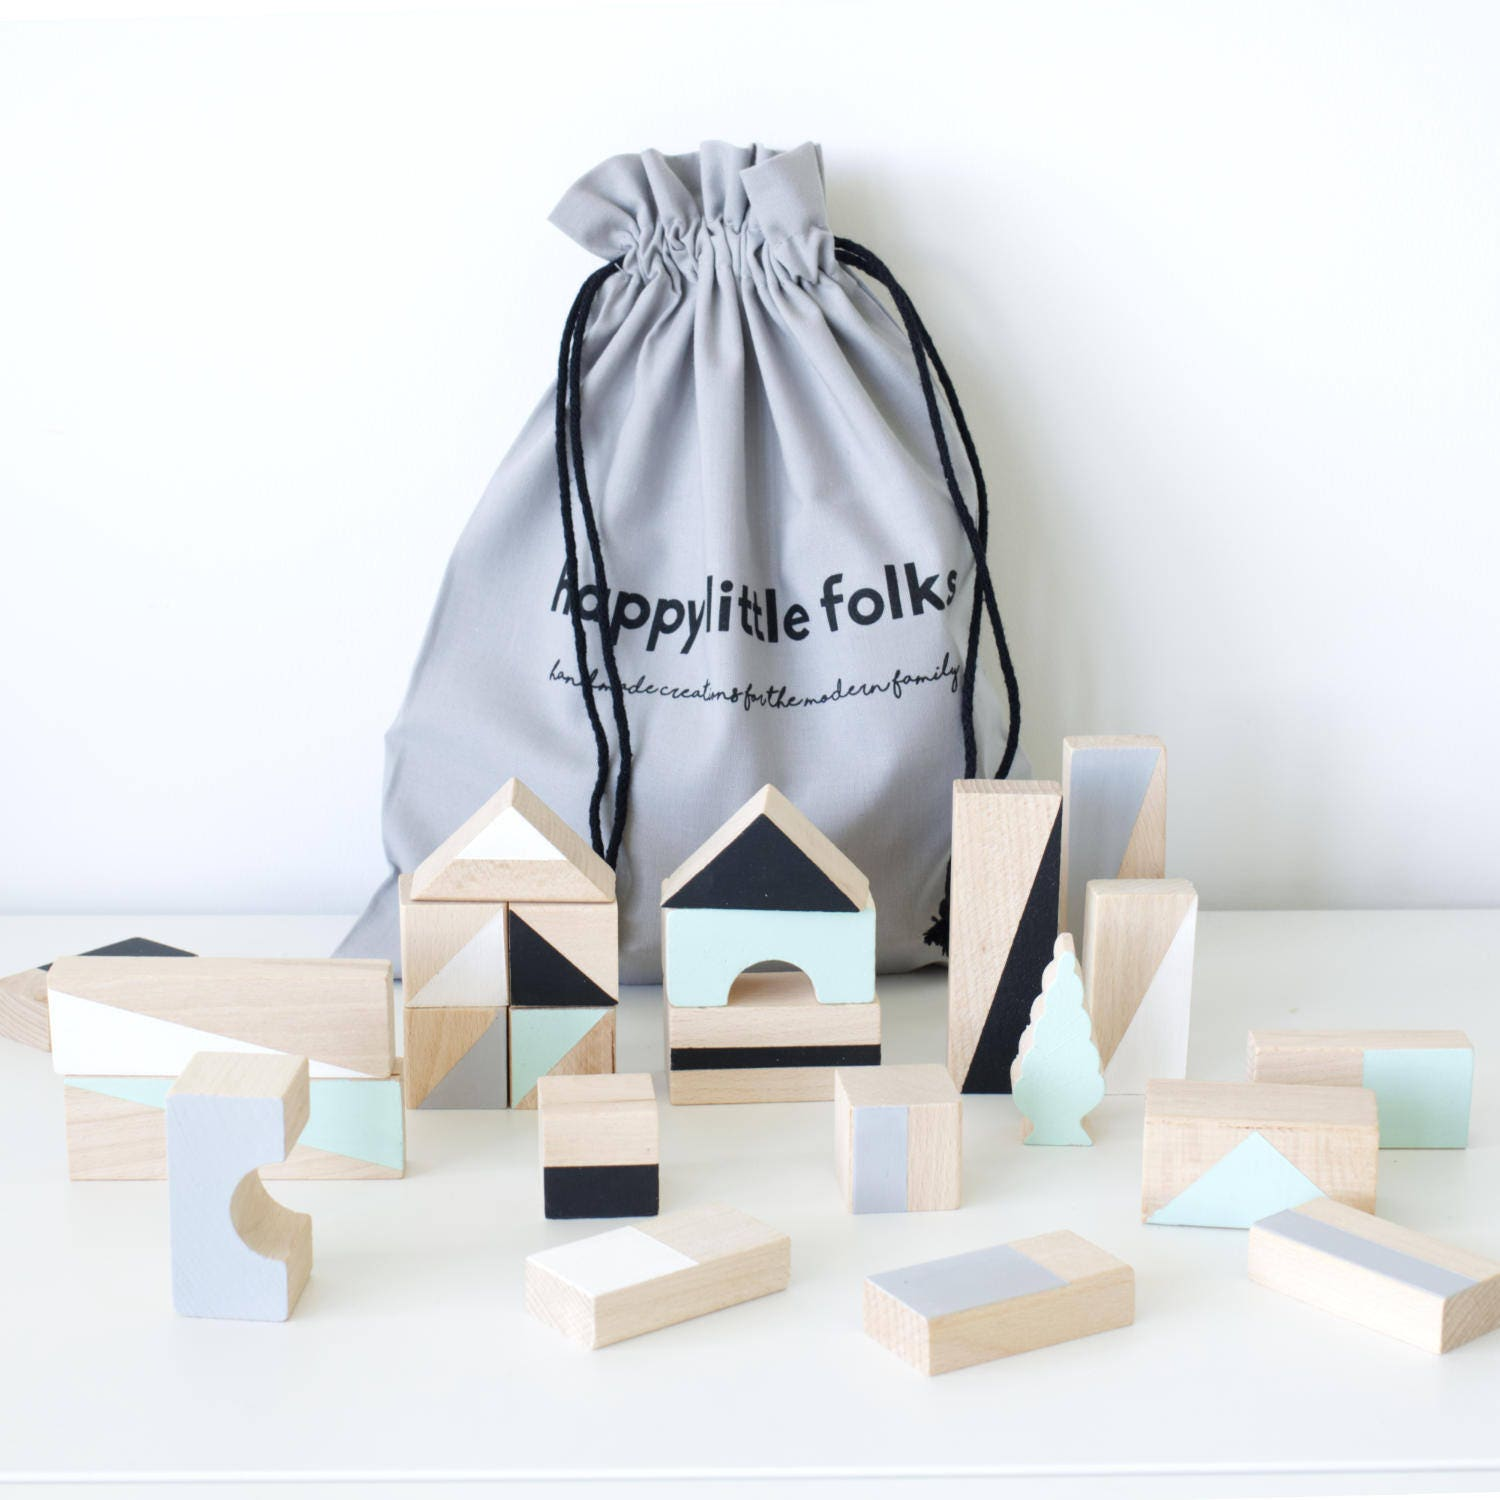 Wooden blocks in Mint Monochrome colours packed in cotton bag Building blocks Wooden toy Baby gift Toddler Christmas gift idea